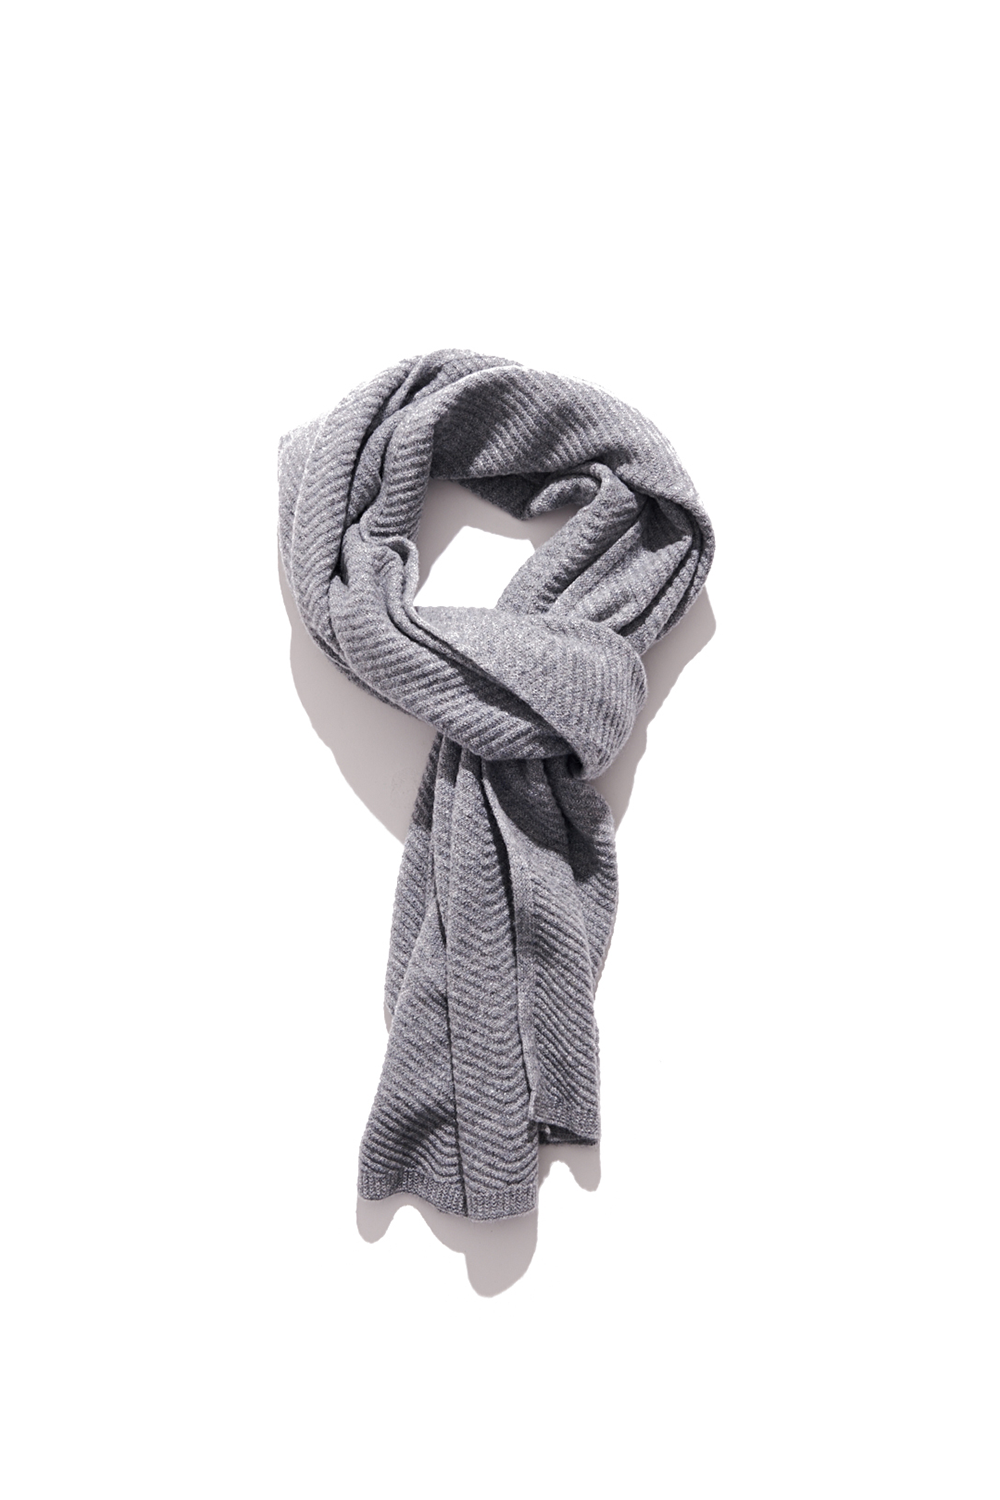 Premium pure cashmere100 whole-garment knitting shawl and scarf - Light gray